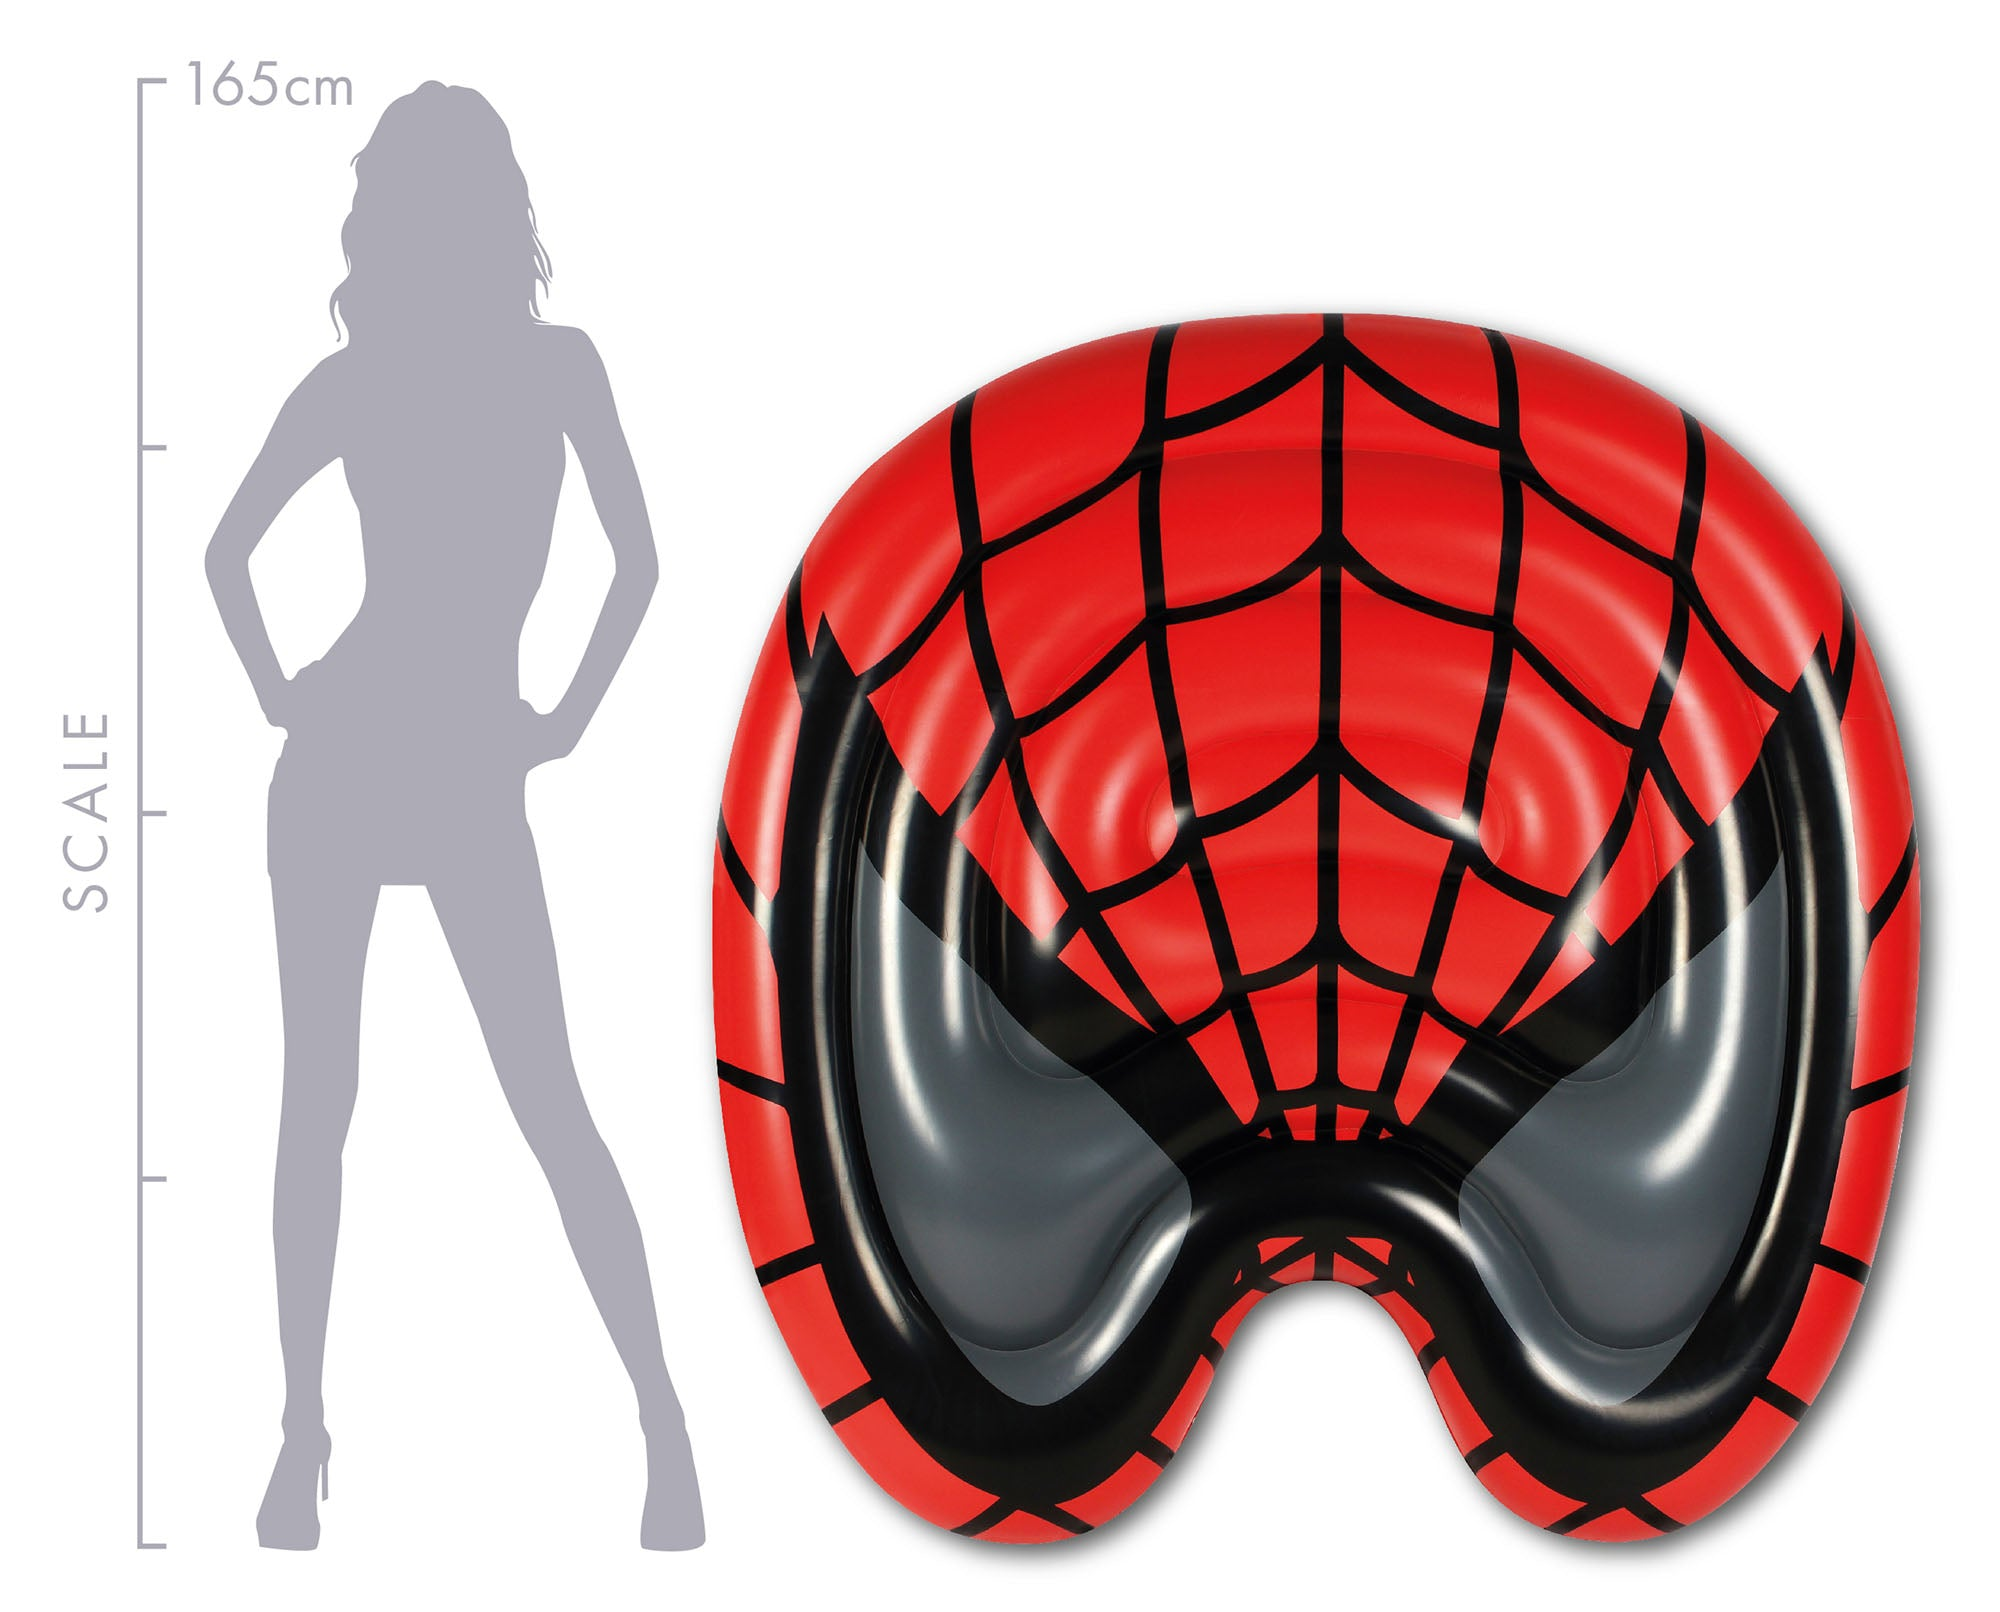 Superhero Mask Inflatables. Batman and Spider-Man - Chachi's Bay - kids rashies - kids swimwear - kids swim shoes - round towels - beach towels